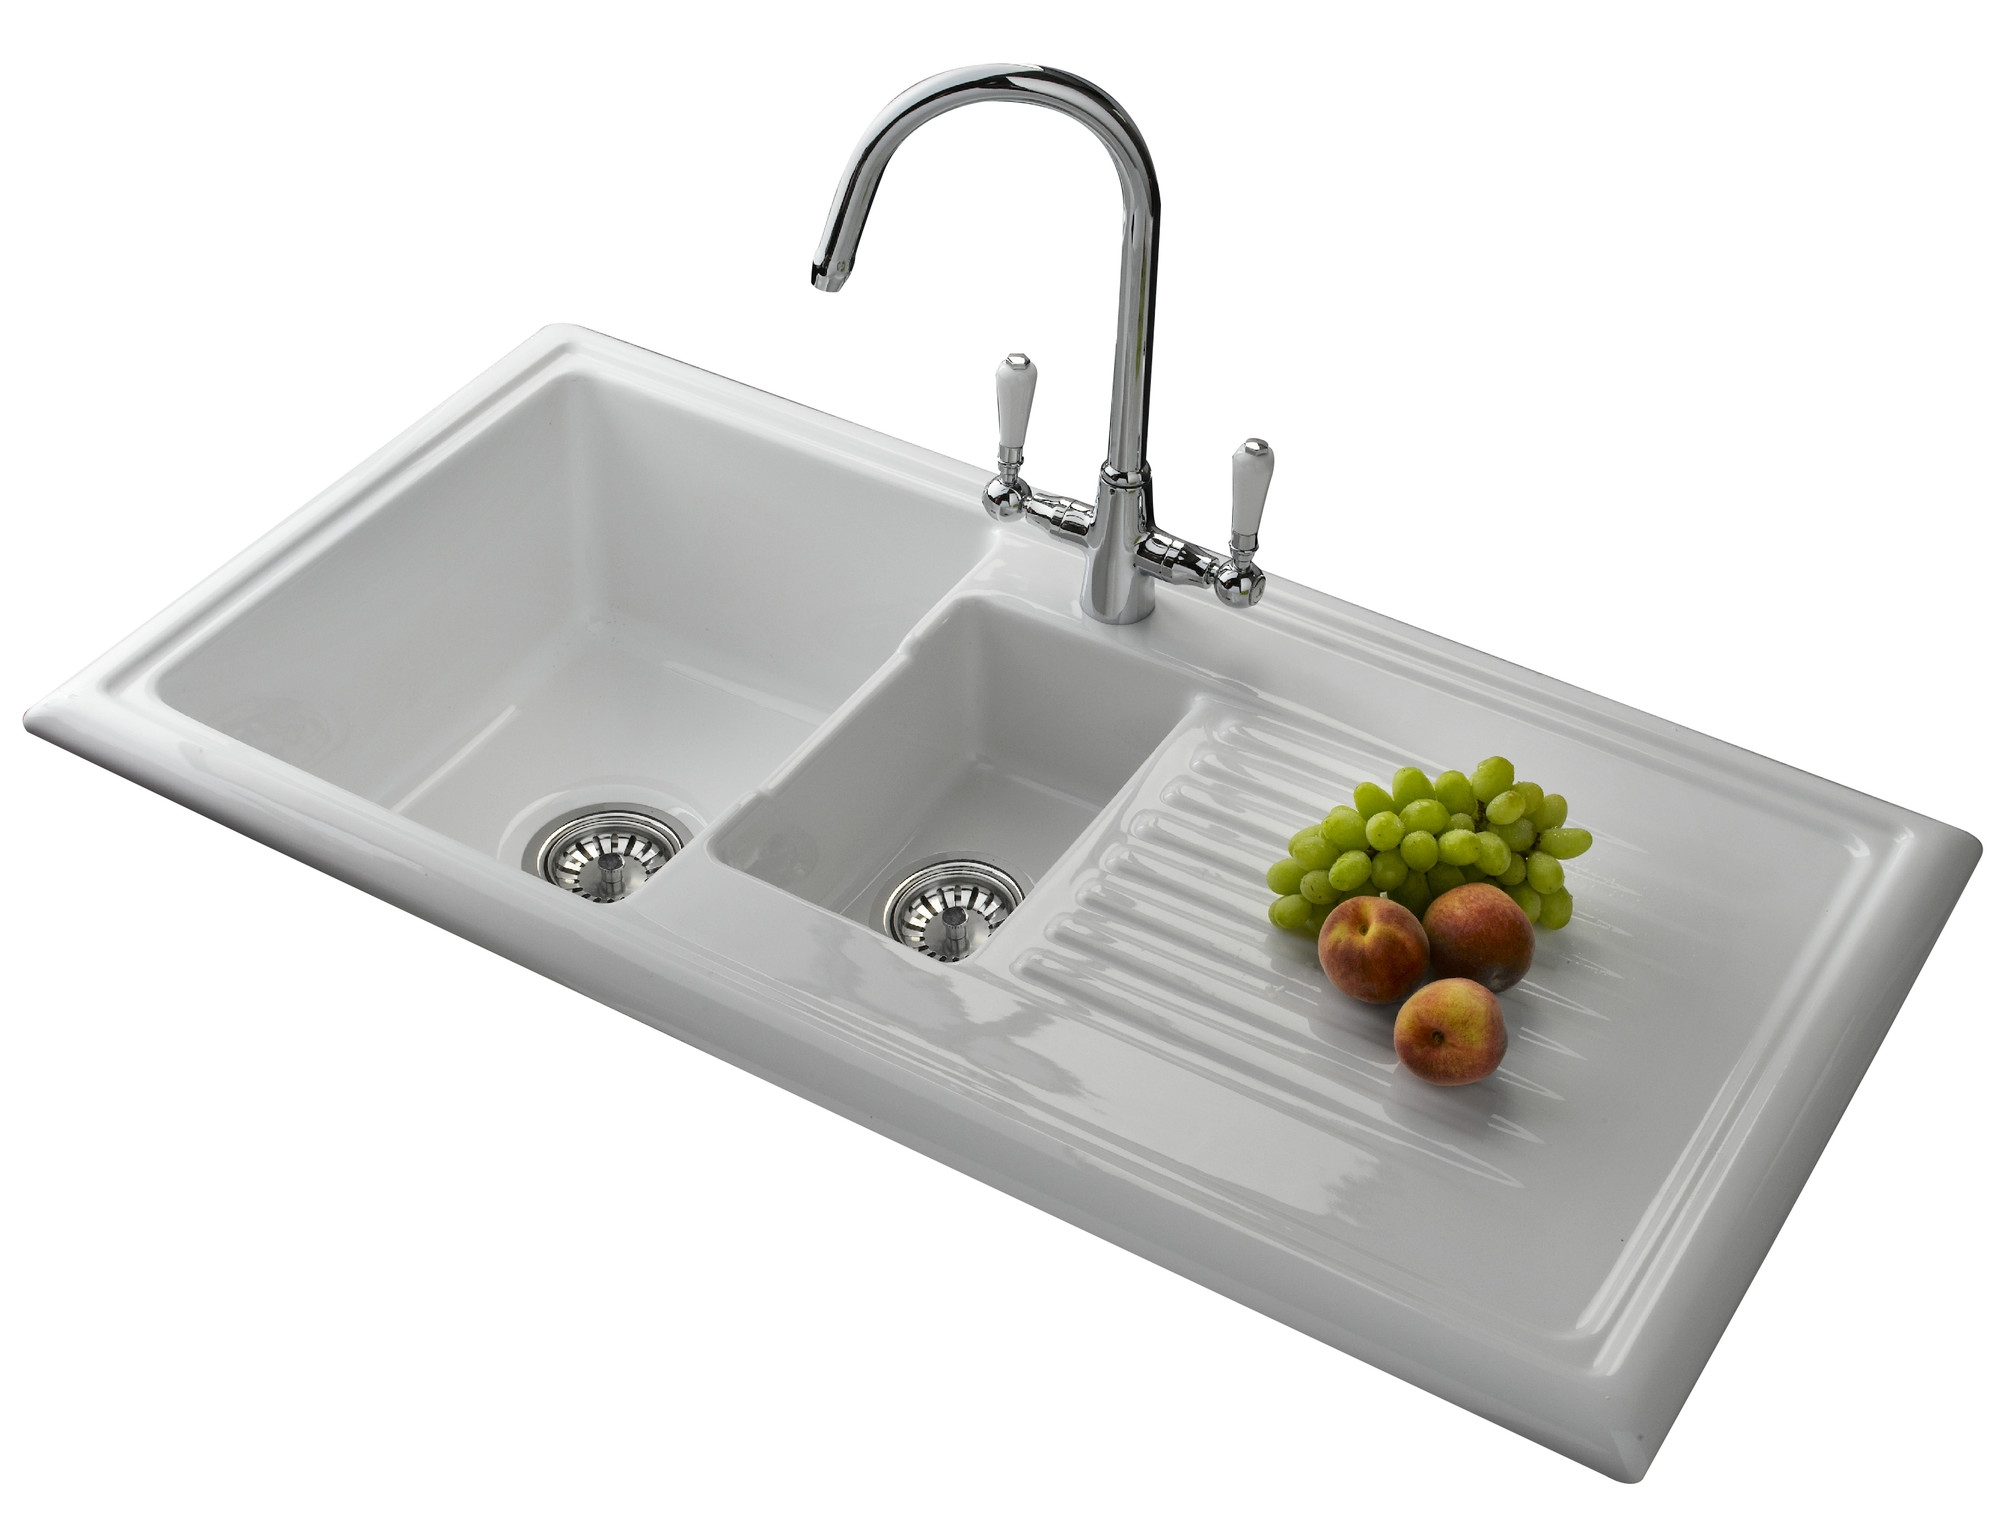 Kitchen Sink Set Wollongong Kitchen Sink Set Wollongong 101cm x 525cm 1 12 inset kitchen sink with elbe tap and waste 2000 X 1518